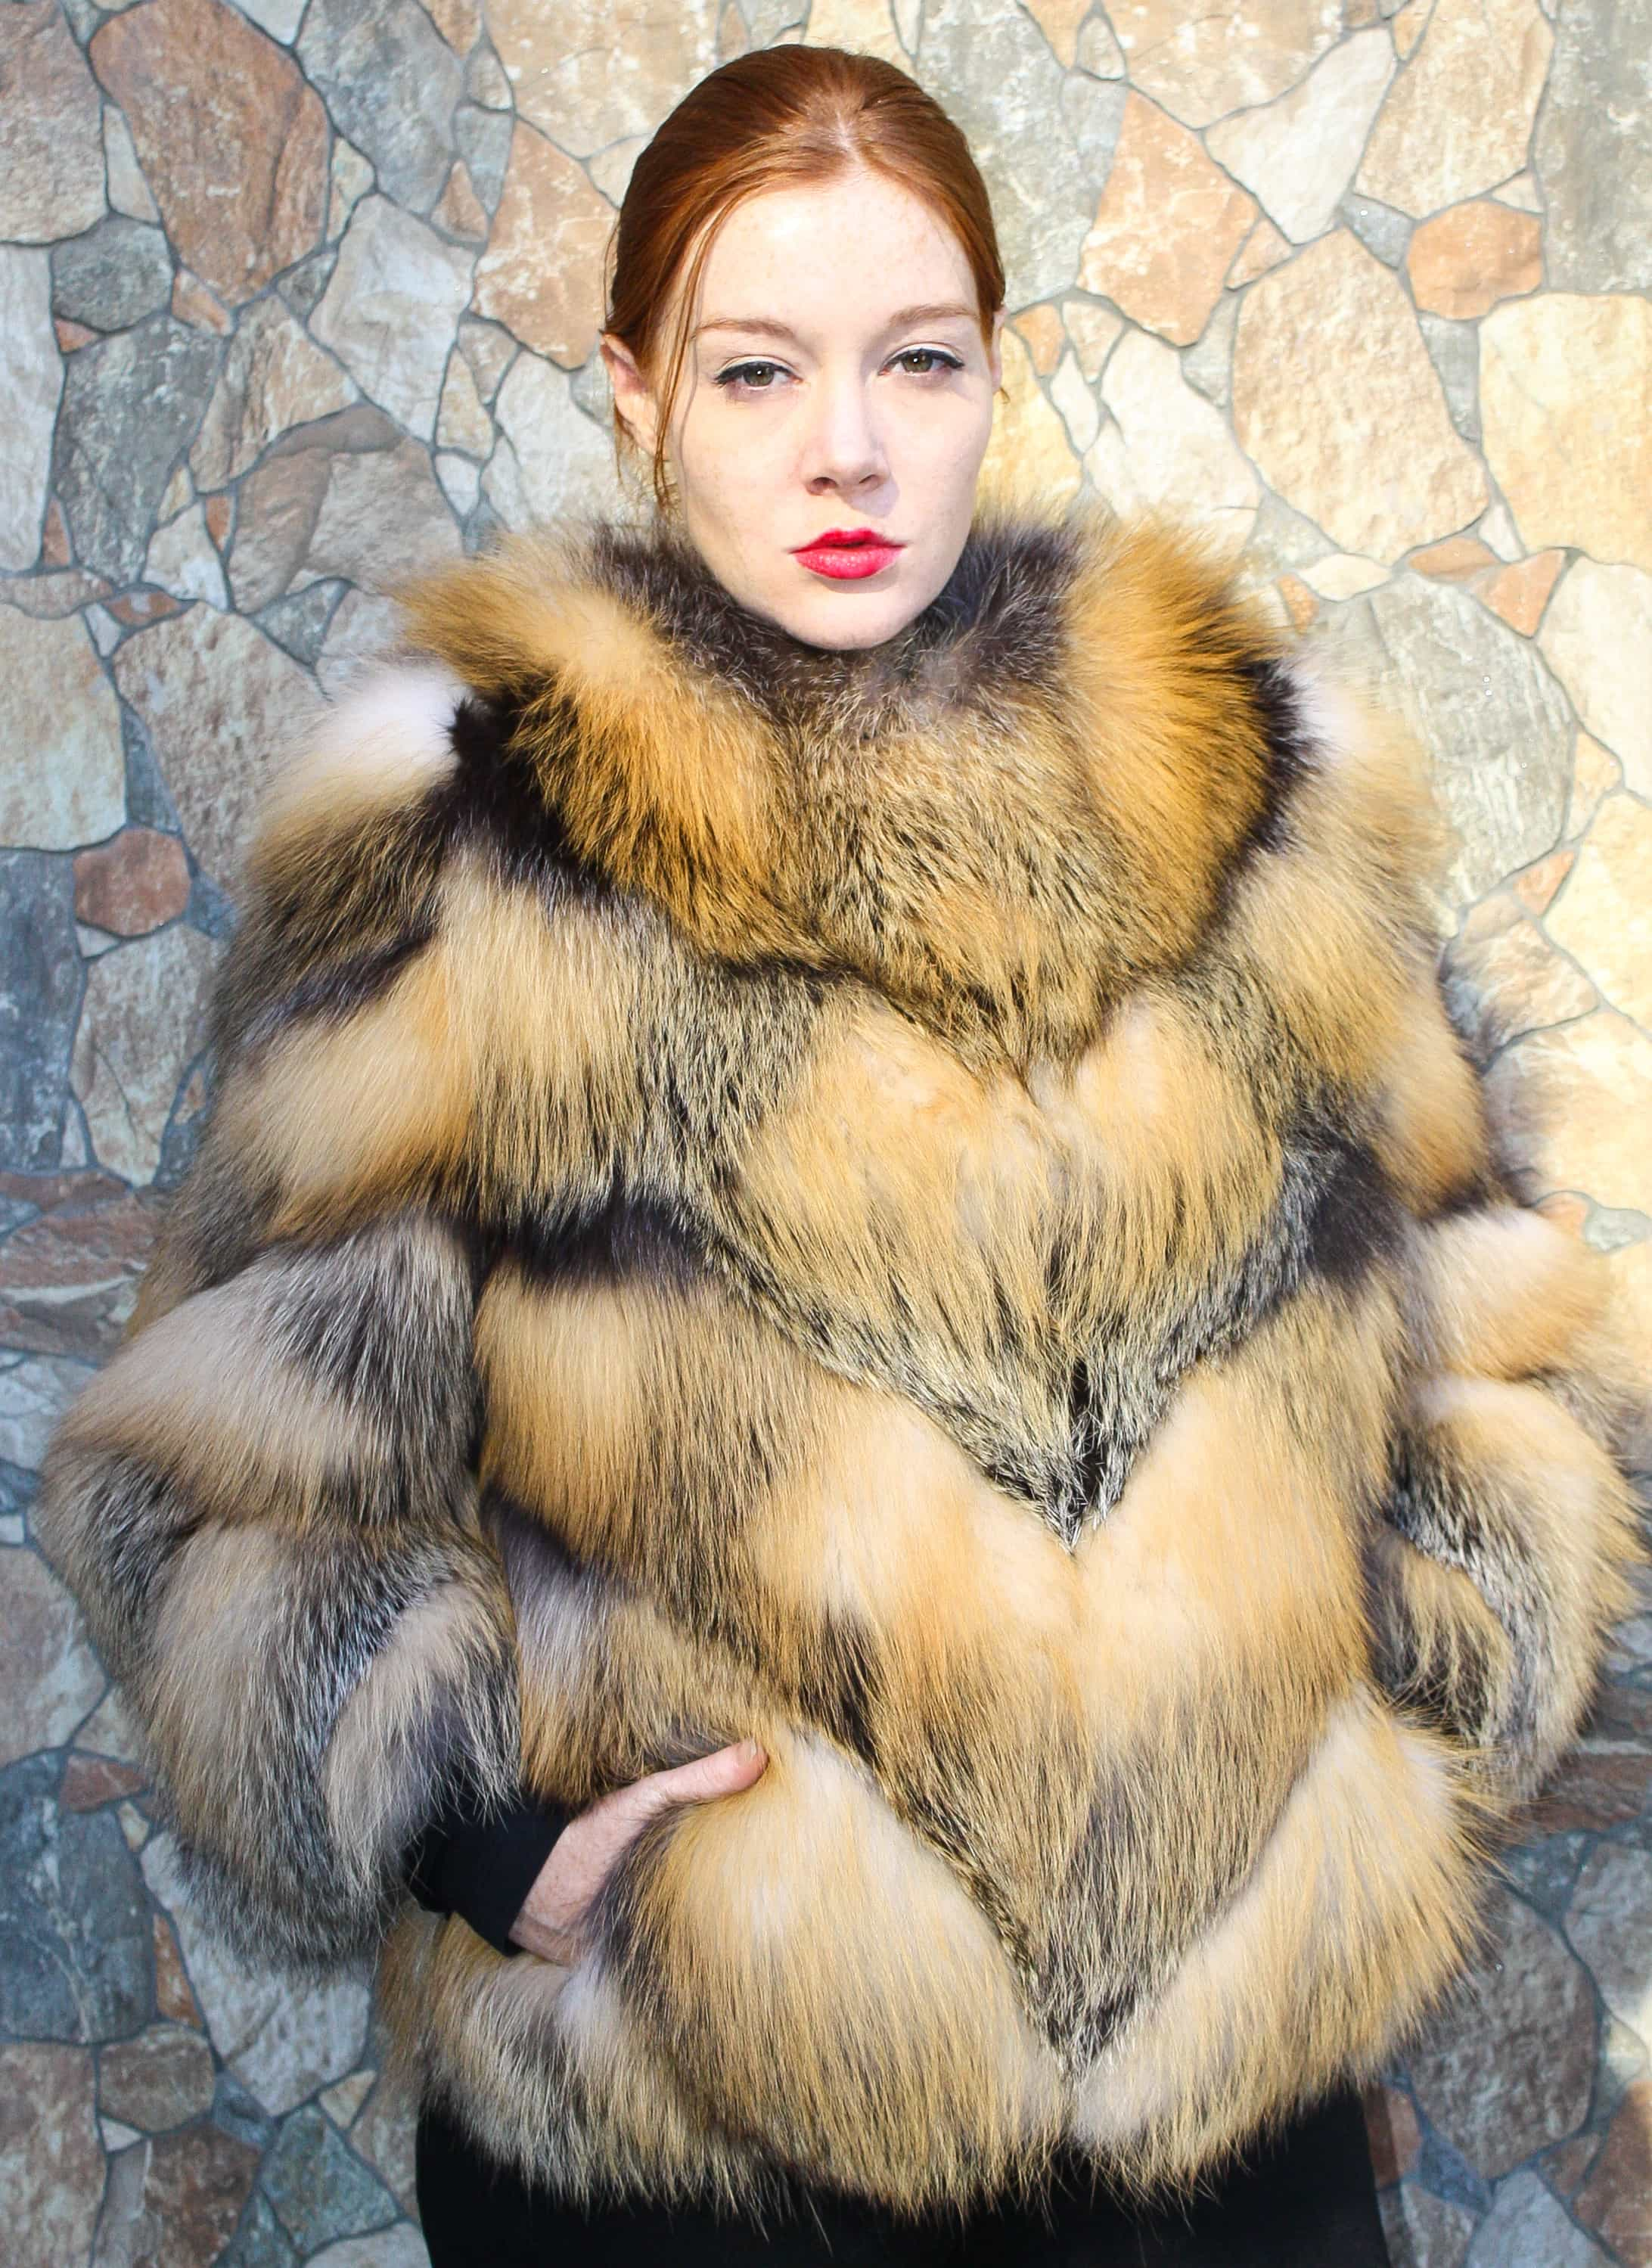 Fur Prices Rise 2012 2013 on Record Levels | MARC KAUFMAN FURS